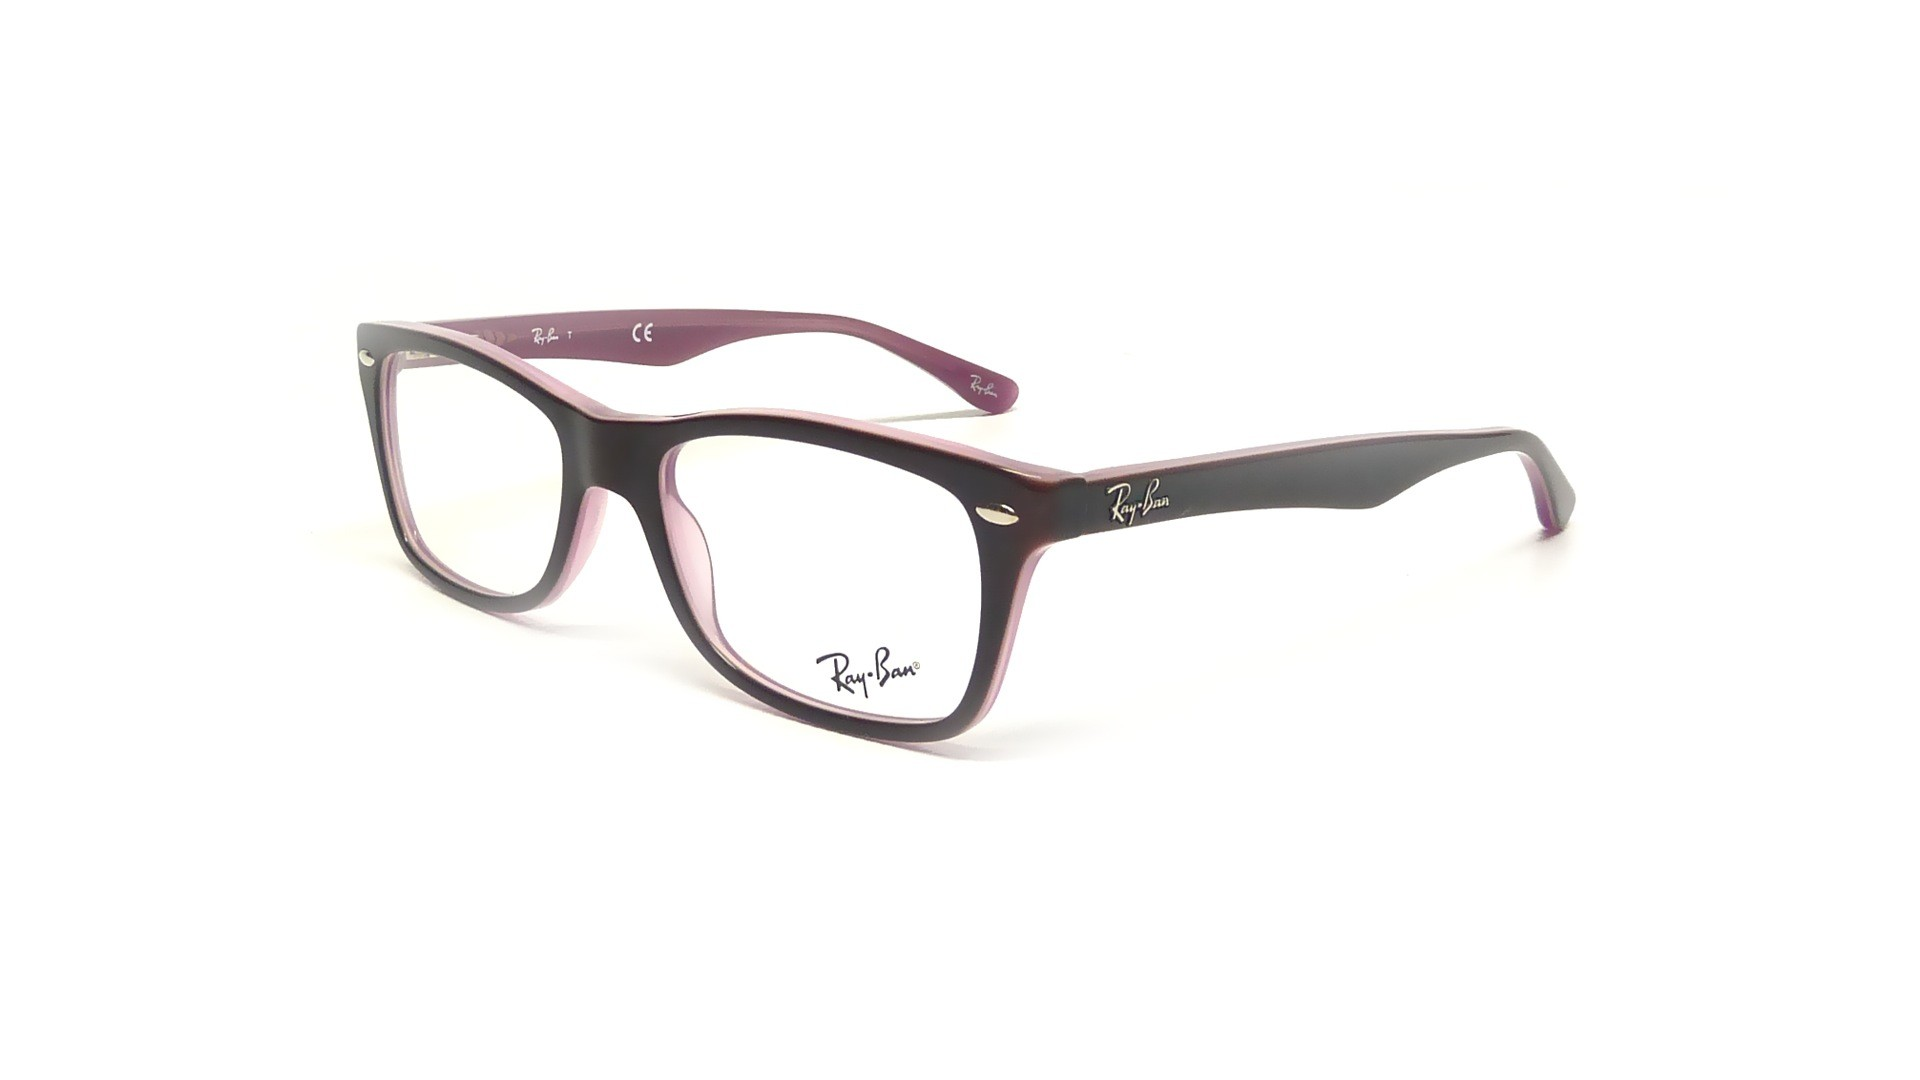 ray ban rx5228 rb5228 2126 50 17 purple visiofactory. Black Bedroom Furniture Sets. Home Design Ideas